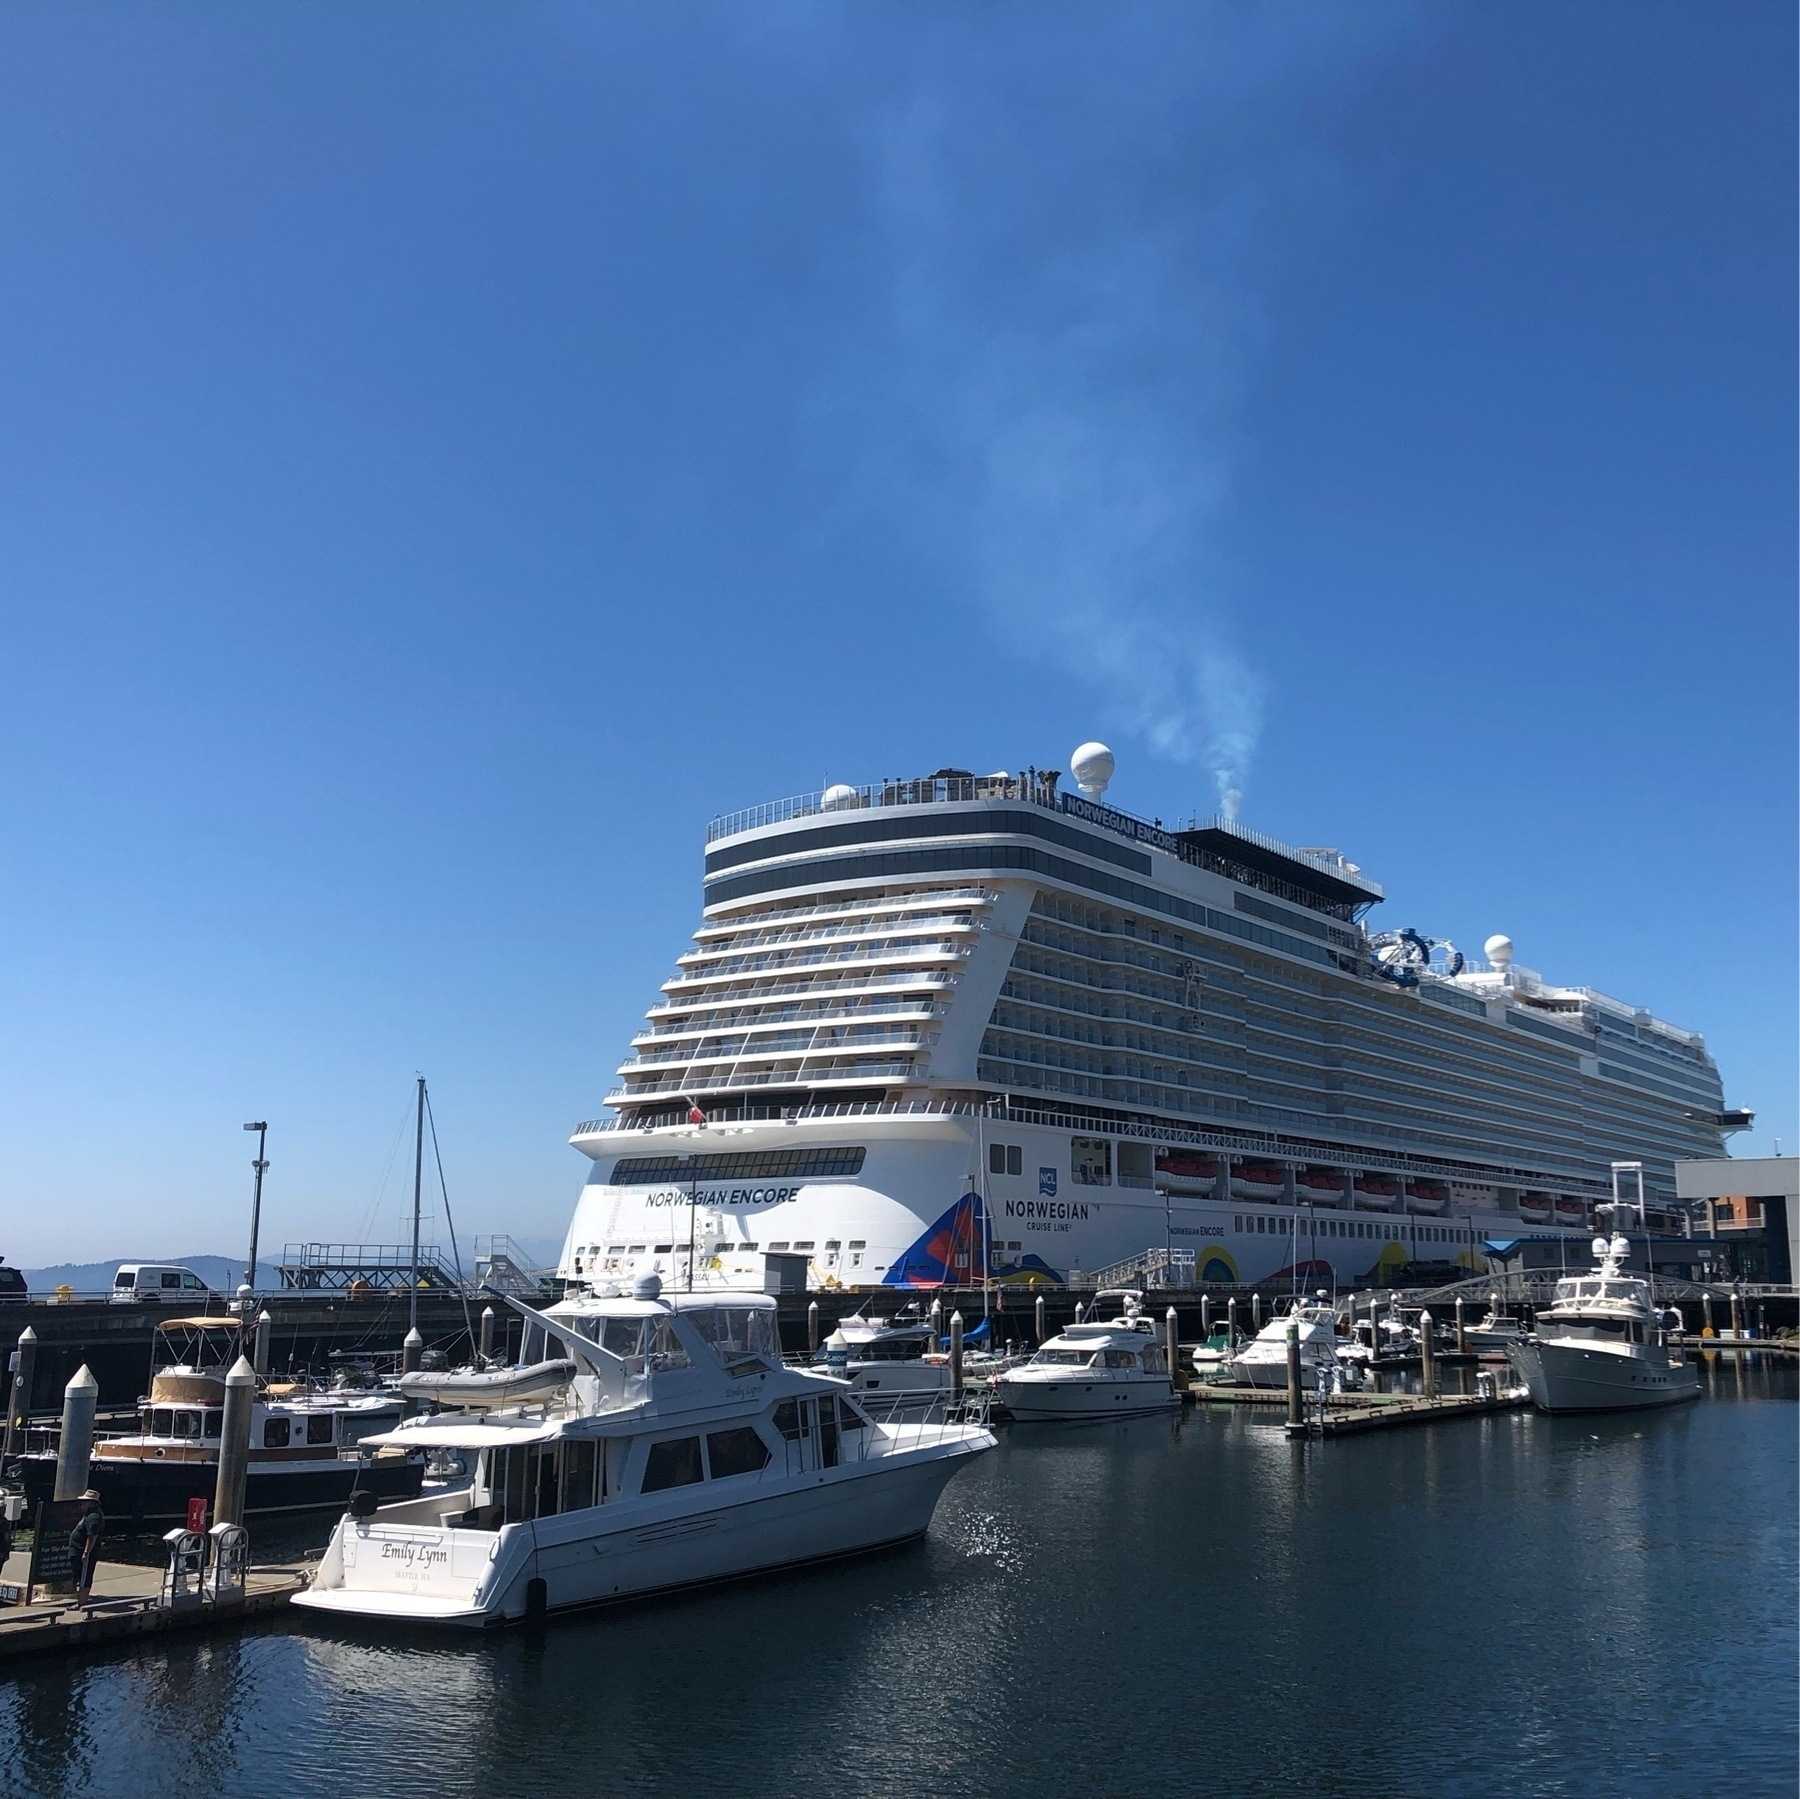 The Norwegian Epic sits at Pier 66 like an enormous white floating hotel.